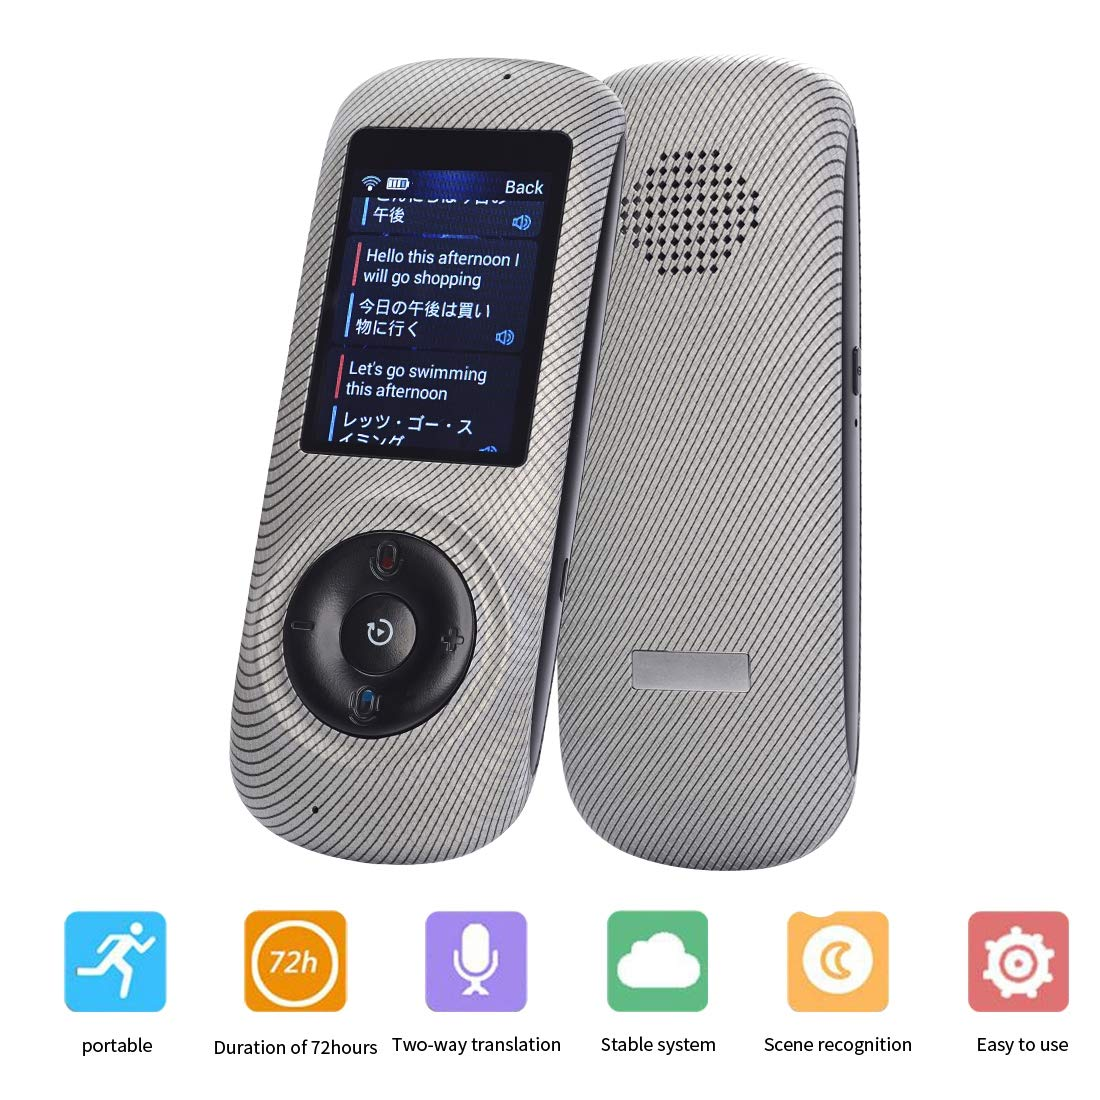 Instant Voice Translator Device Translation 45 Languages Smart 2 Way WiFi 2.4inch IPS Capacitive Touch Screen by Aspiring (Image #1)